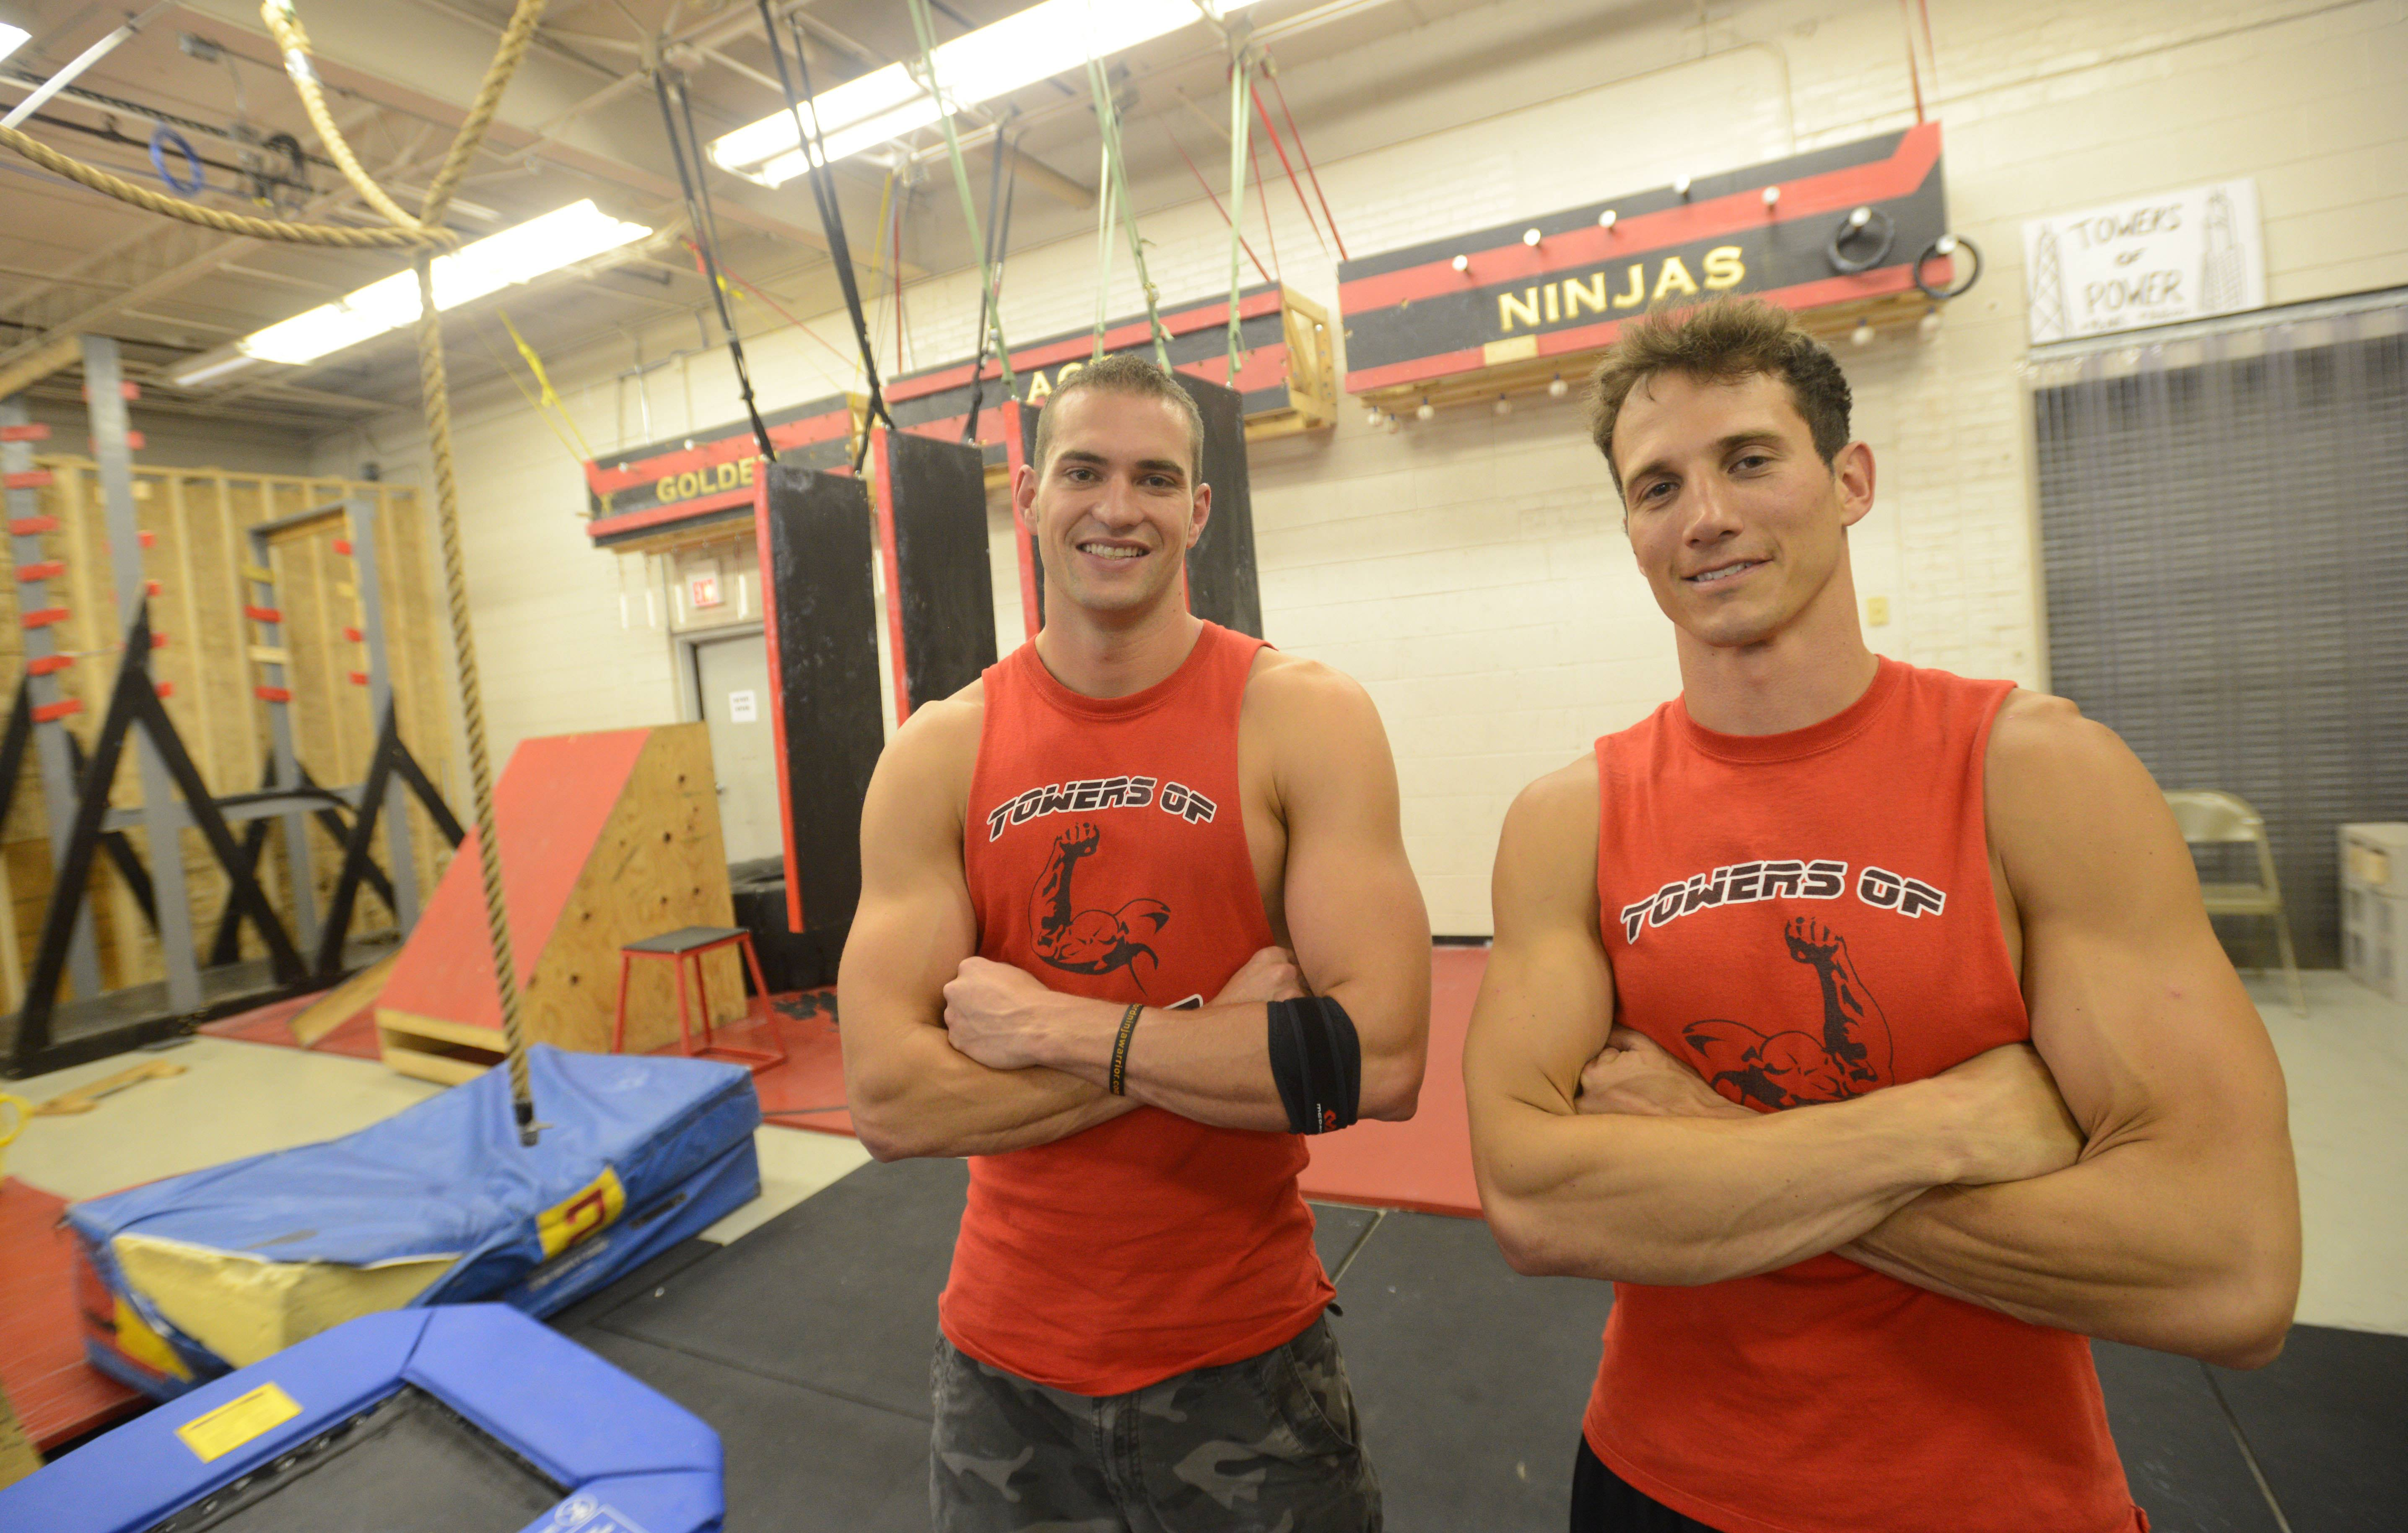 Suburban firefighters compete on 'American Ninja Warrior'